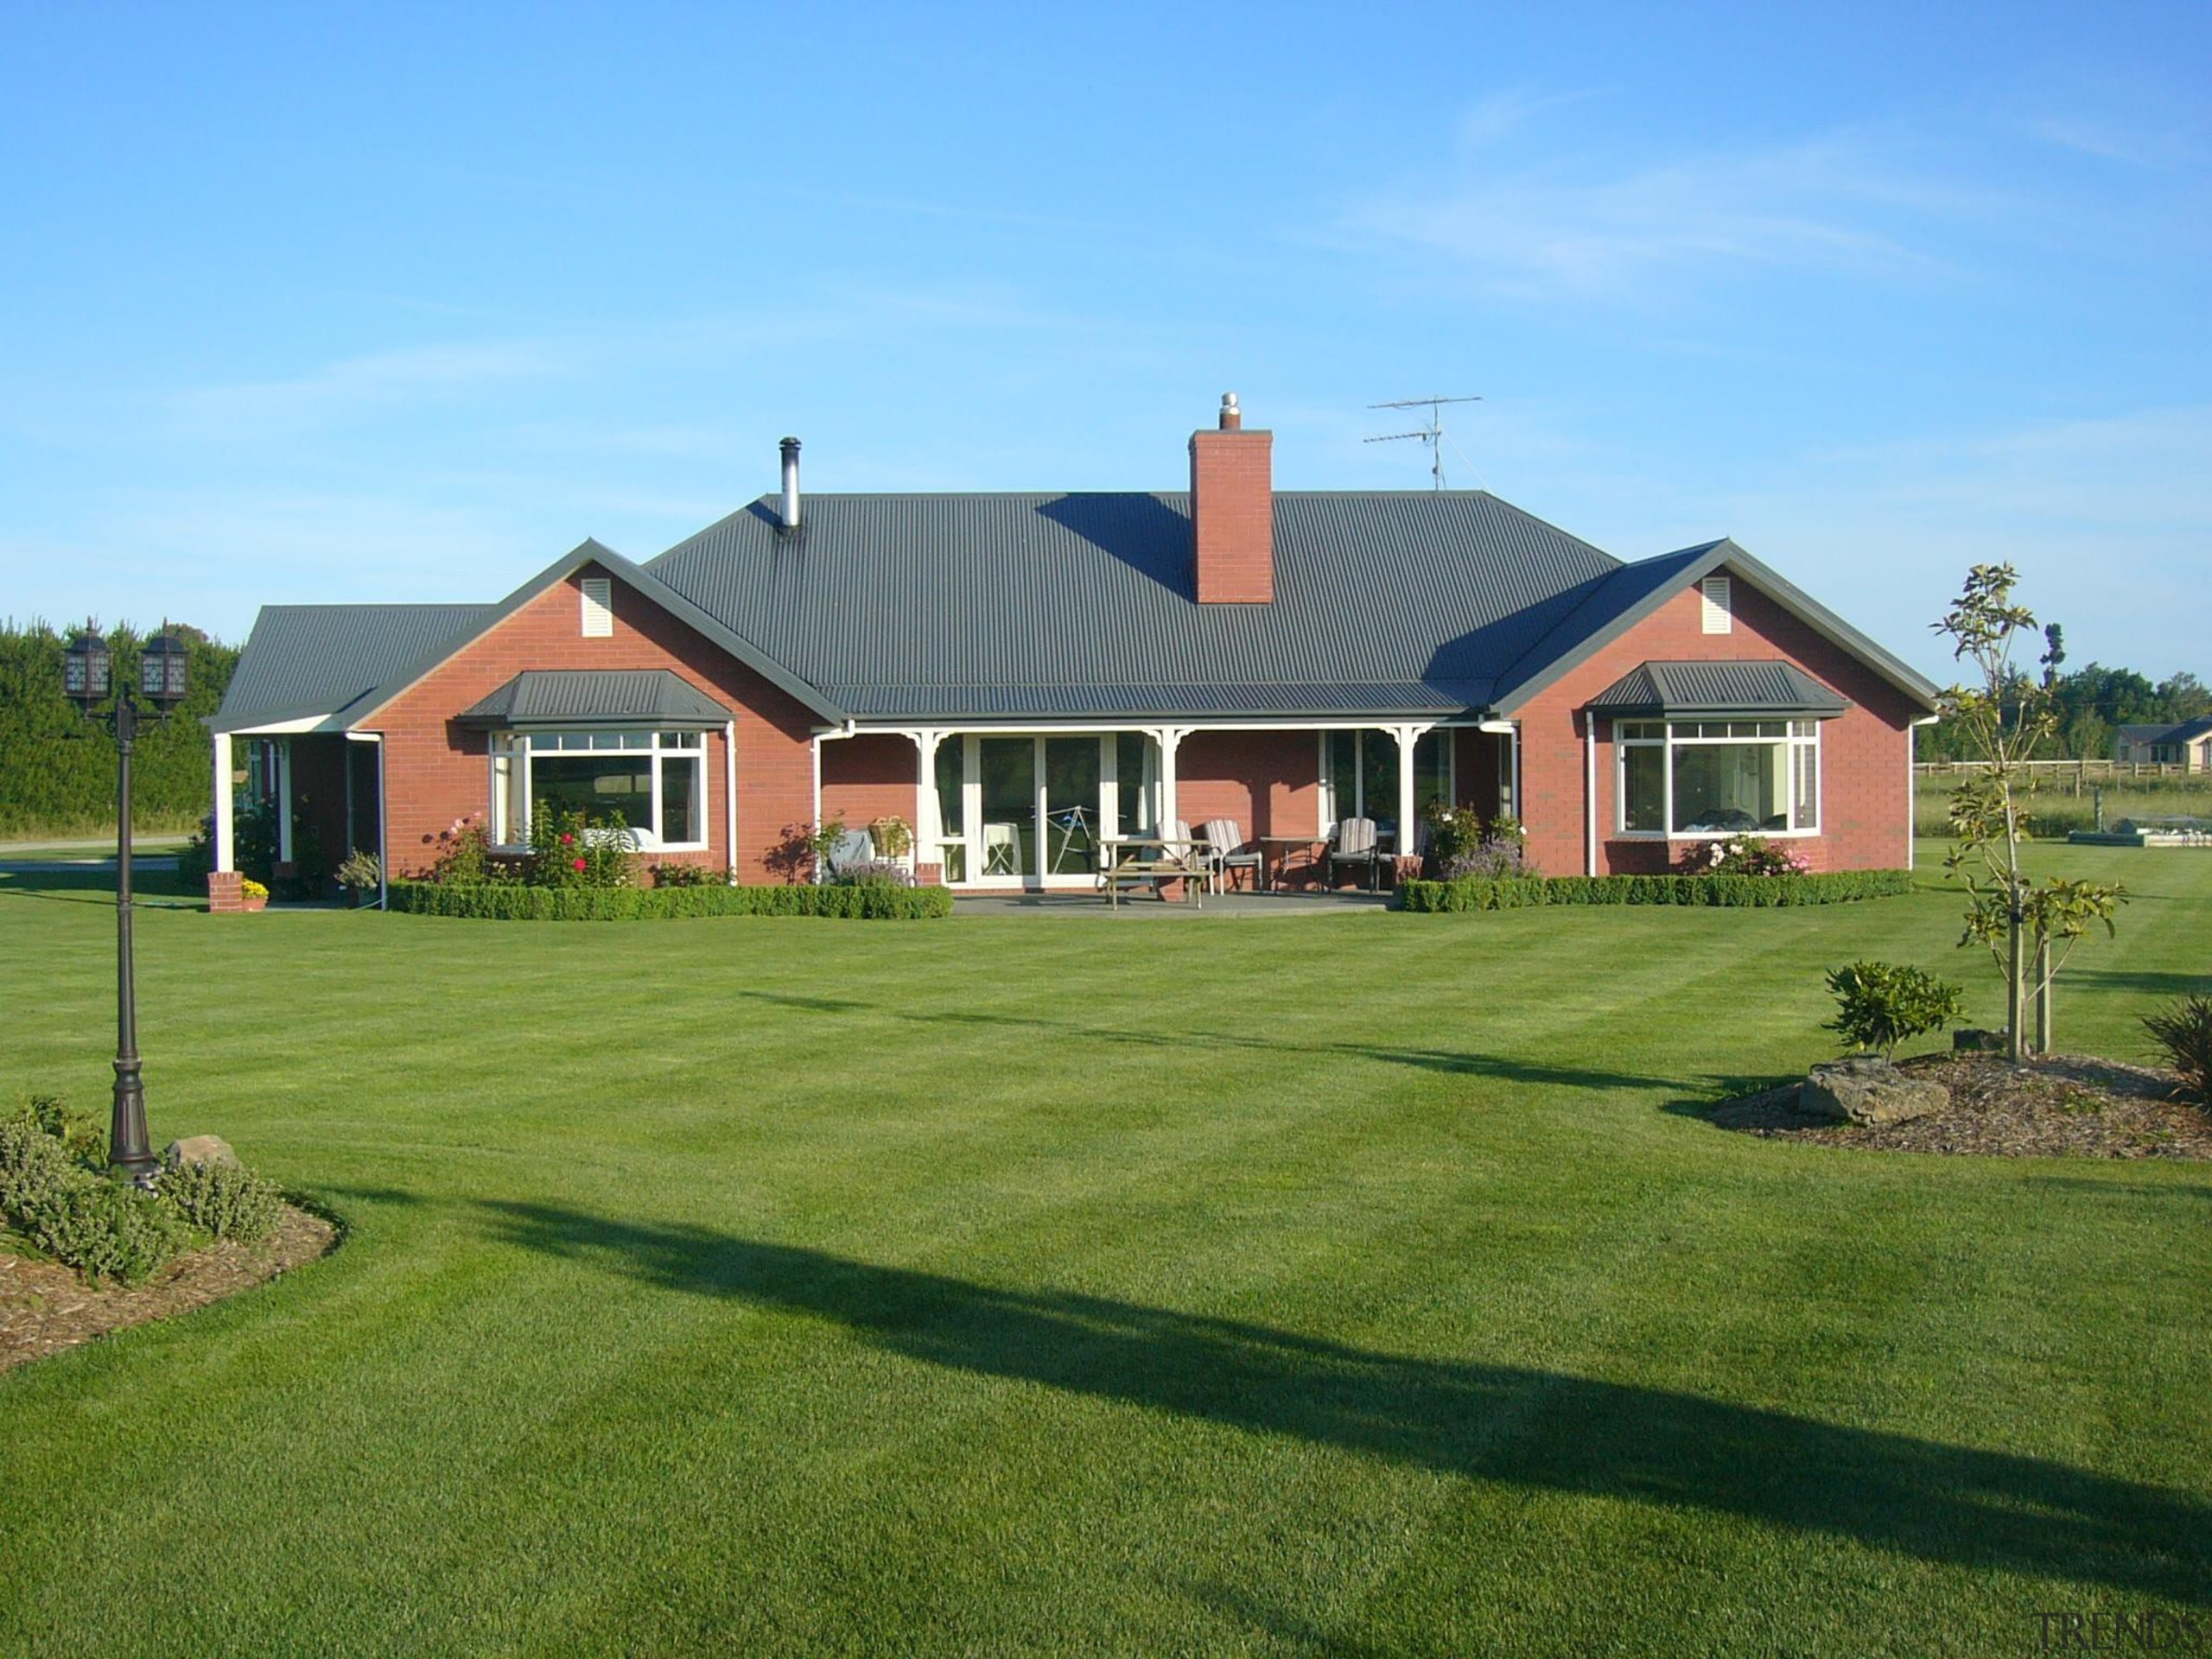 A Canterbury kiln fired red brick home of backyard, cottage, elevation, estate, facade, farm, farmhouse, golf club, grass, home, house, land lot, landscape, landscaping, lawn, plantation, property, real estate, residential area, roof, siding, suburb, yard, green, teal